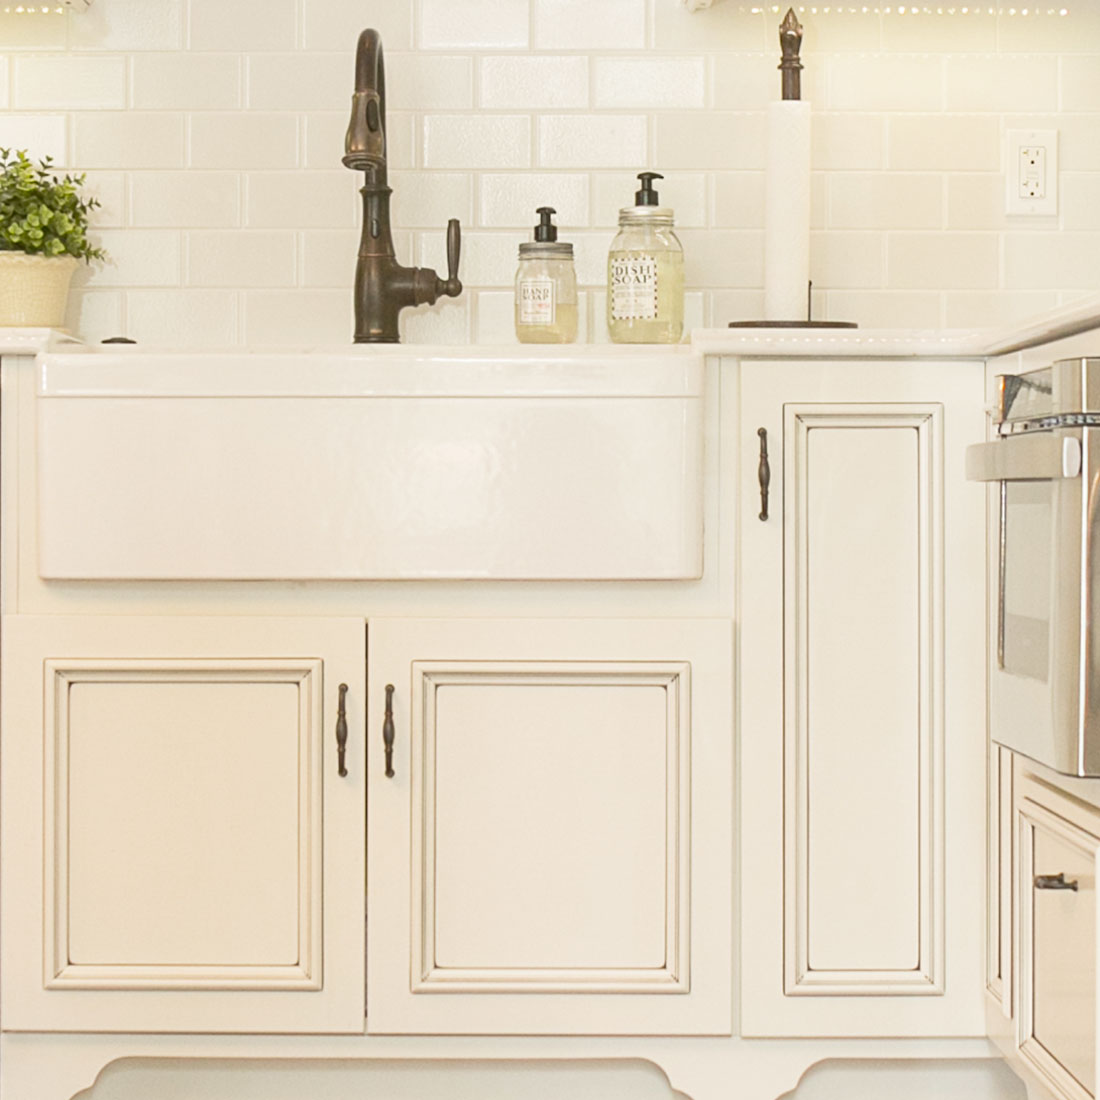 White detailed kitchen cabinets around a farmhouse sink with oil rubbed bronze faucet